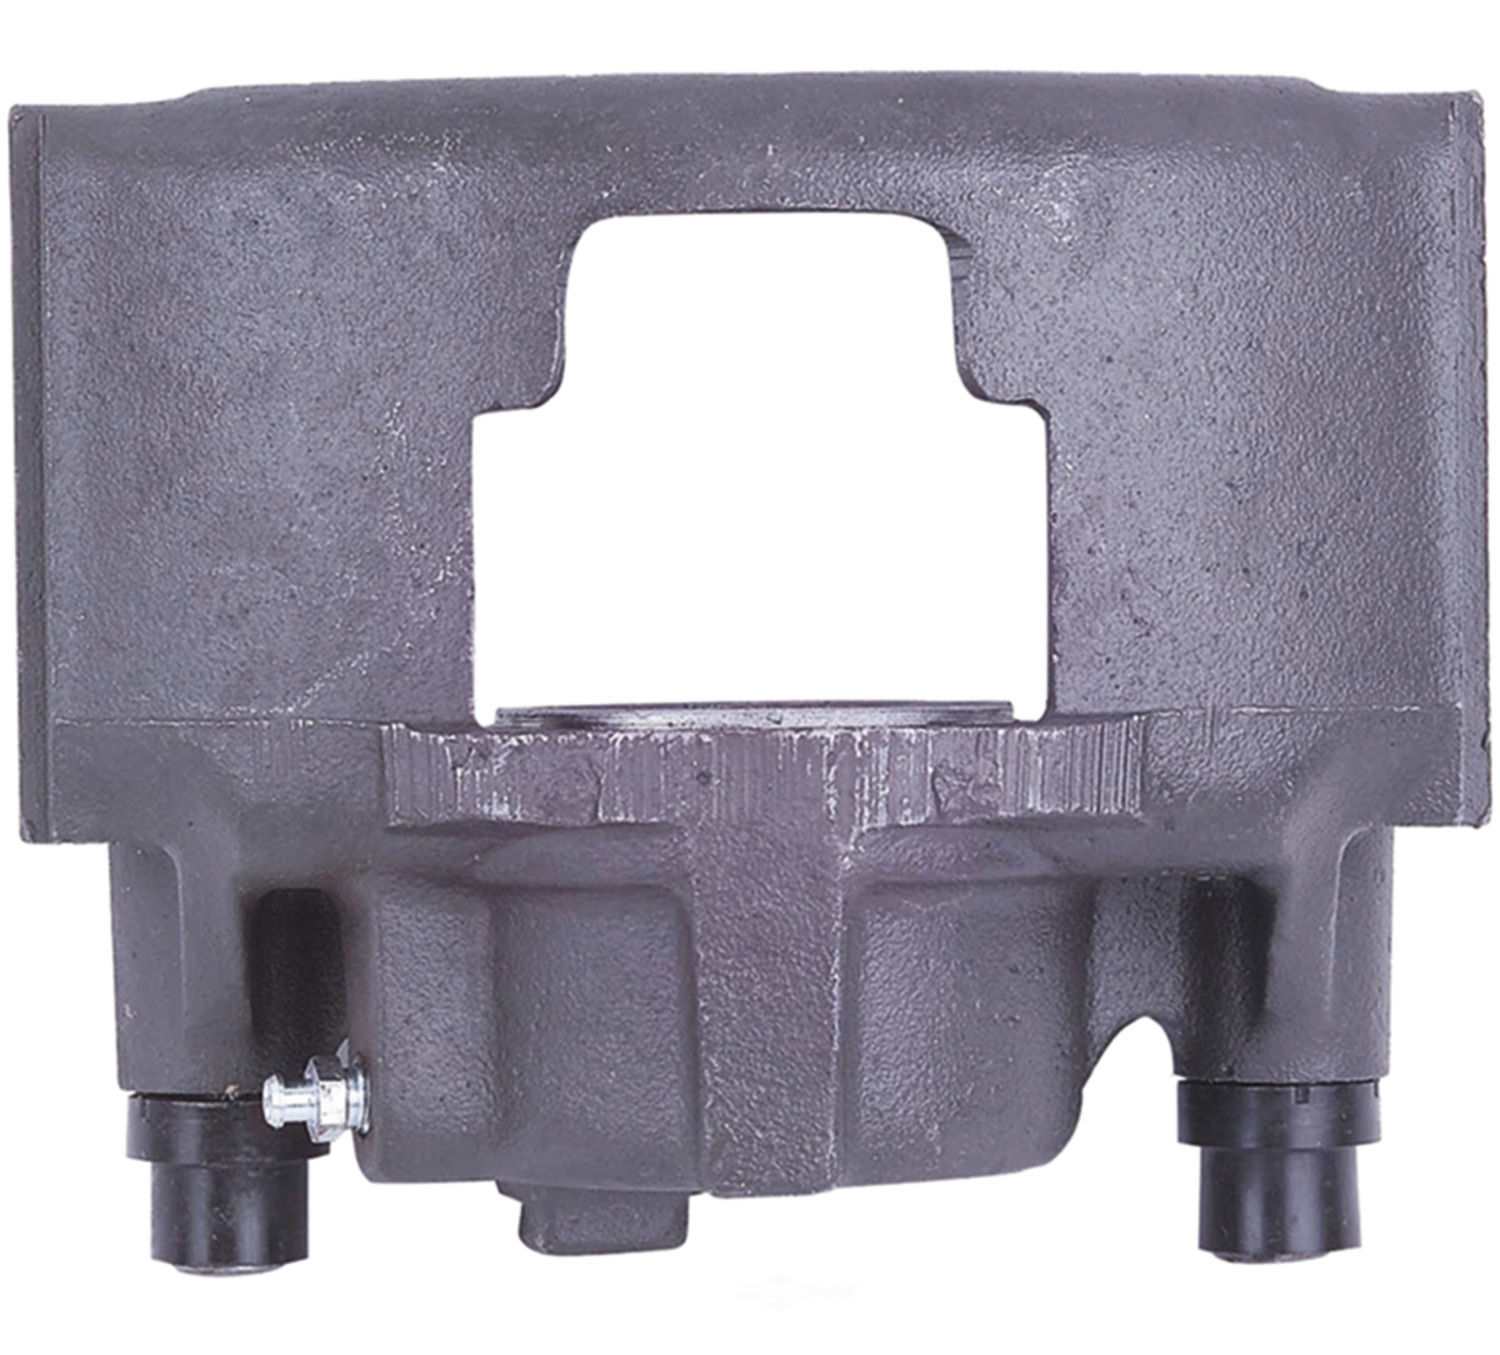 CARDONE/A-1 CARDONE - Reman Friction Choice Caliper - A1C 18-4299